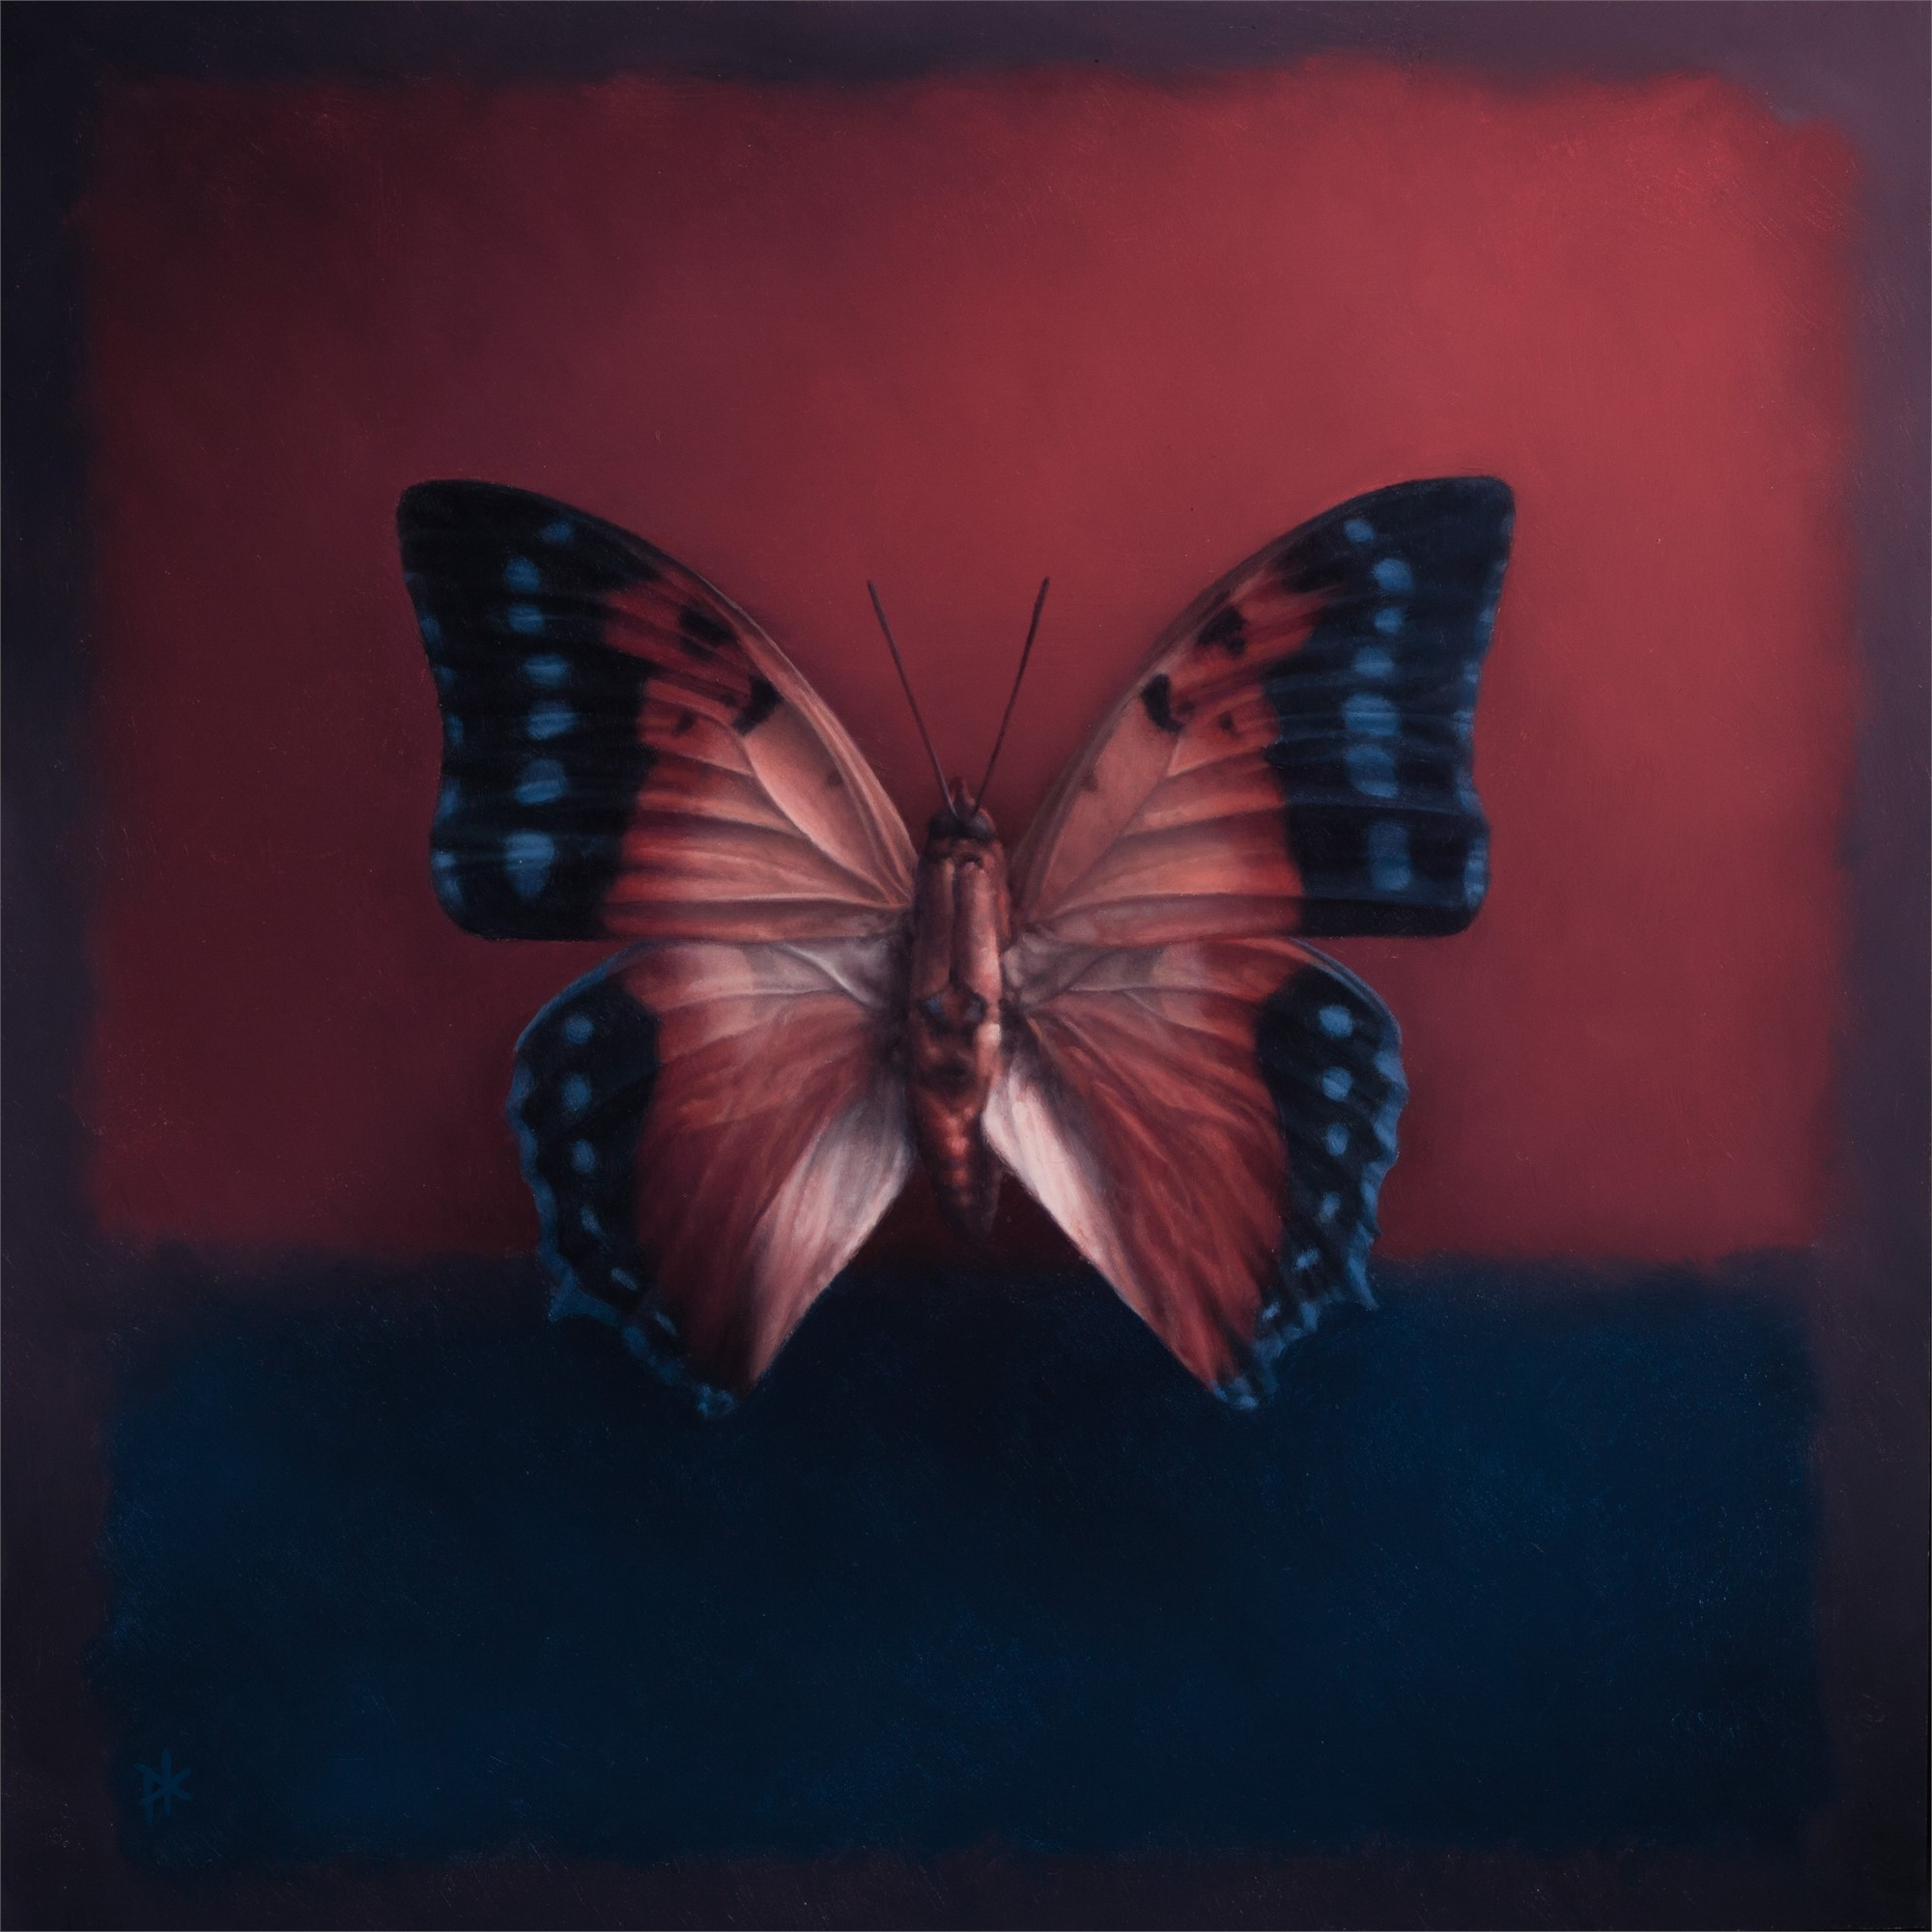 Butterfly 14 by Patrick Kramer